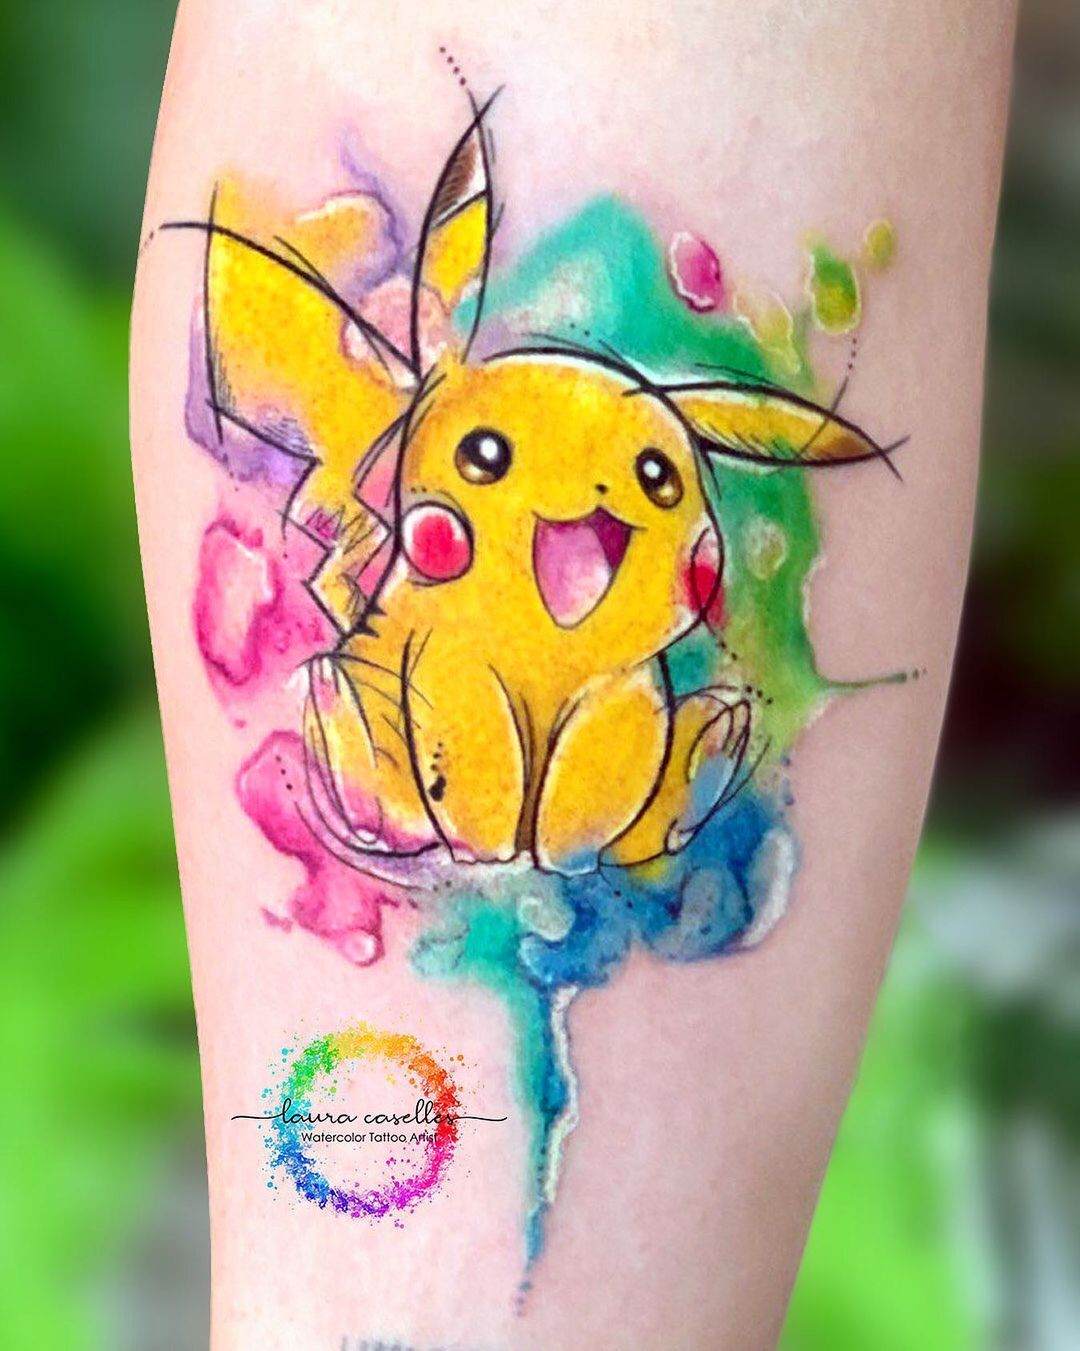 laura-caselles-watercolor-pikachu